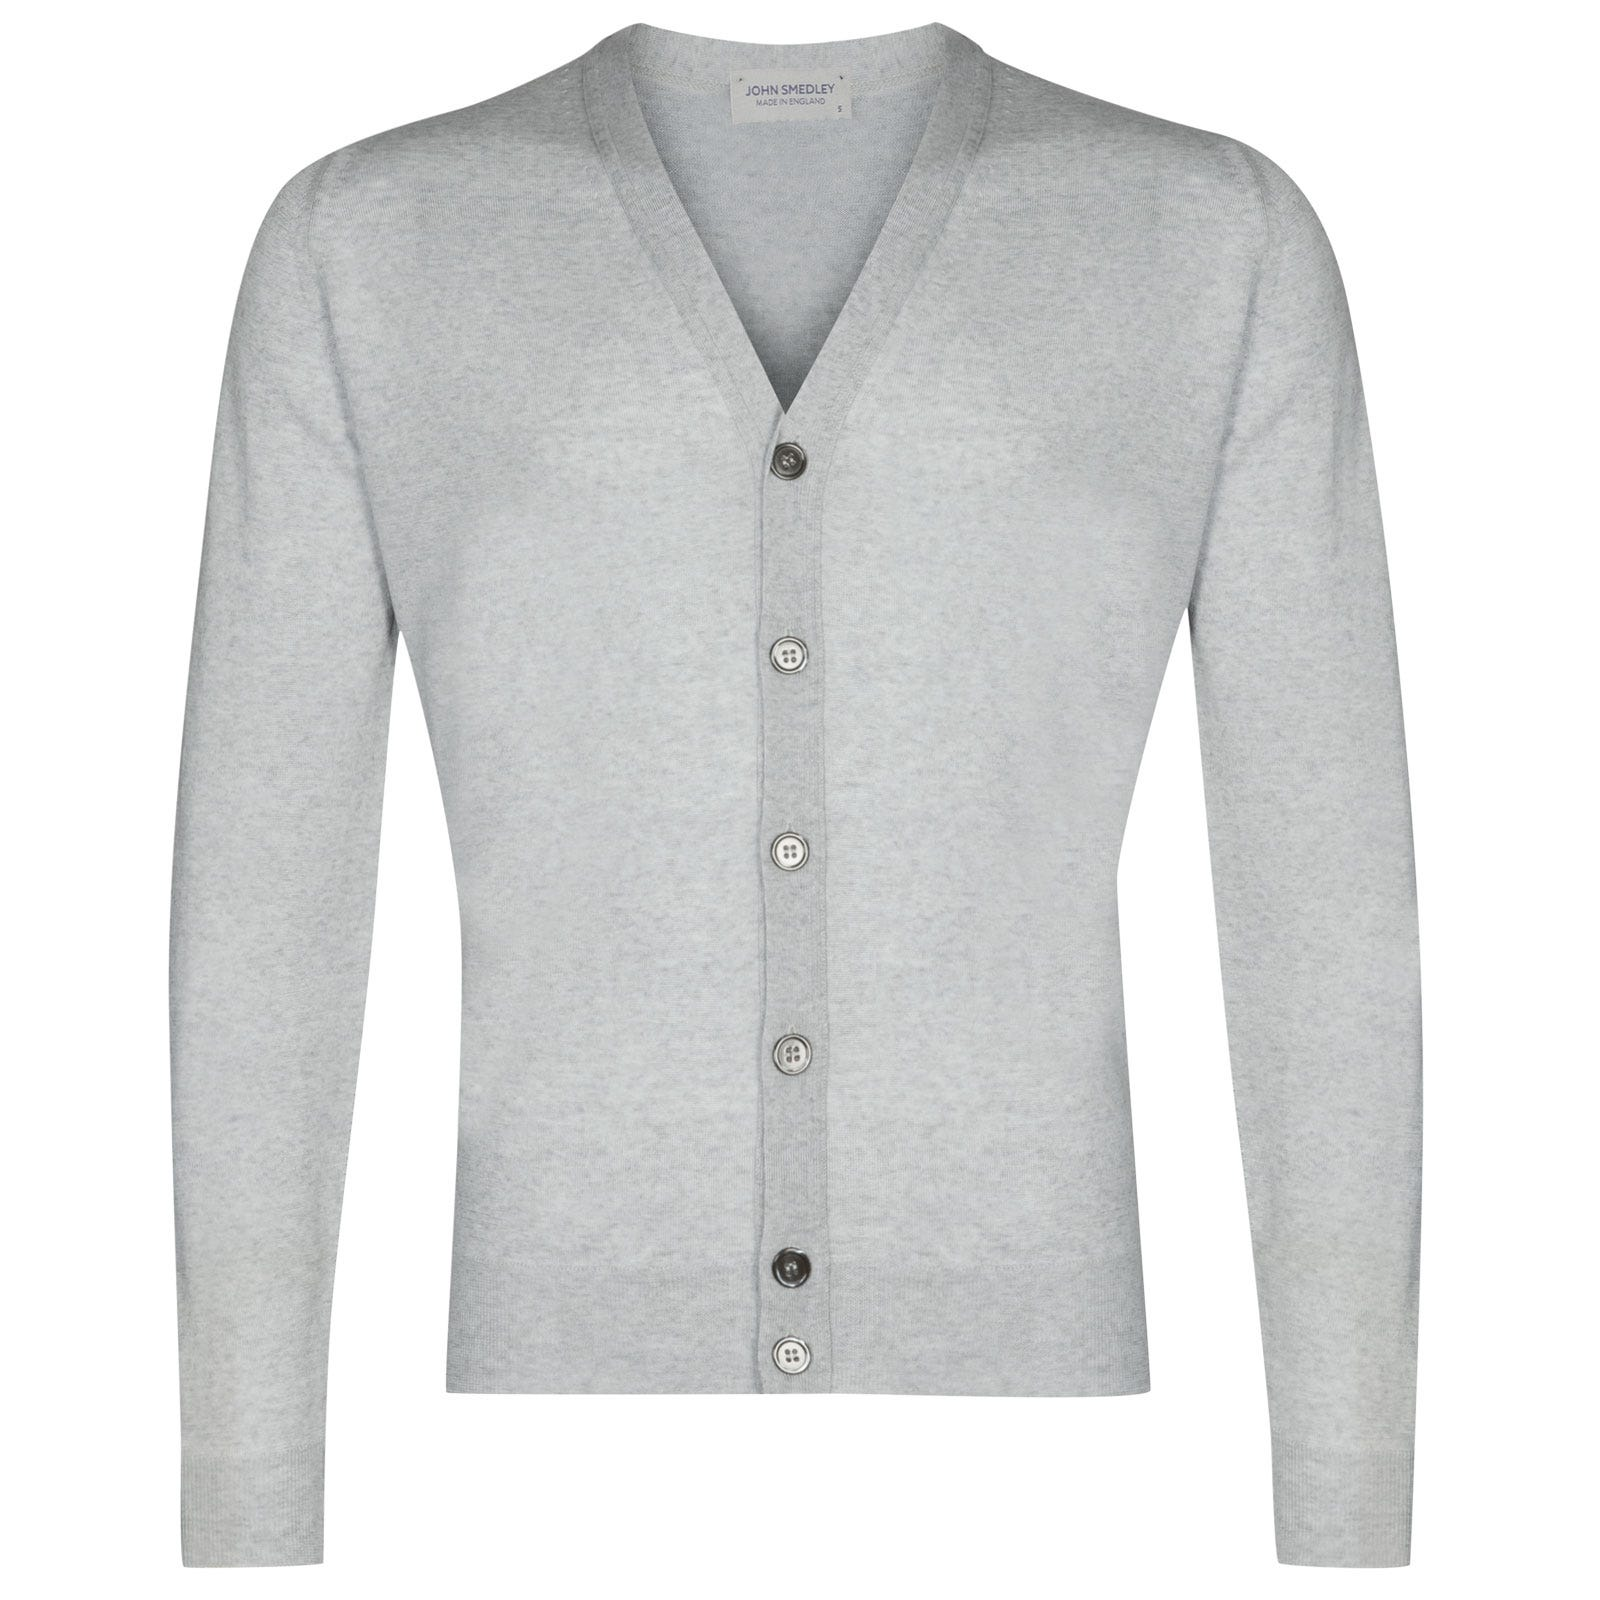 John Smedley naples Merino Wool Cardigan in Bardot Grey-XXL